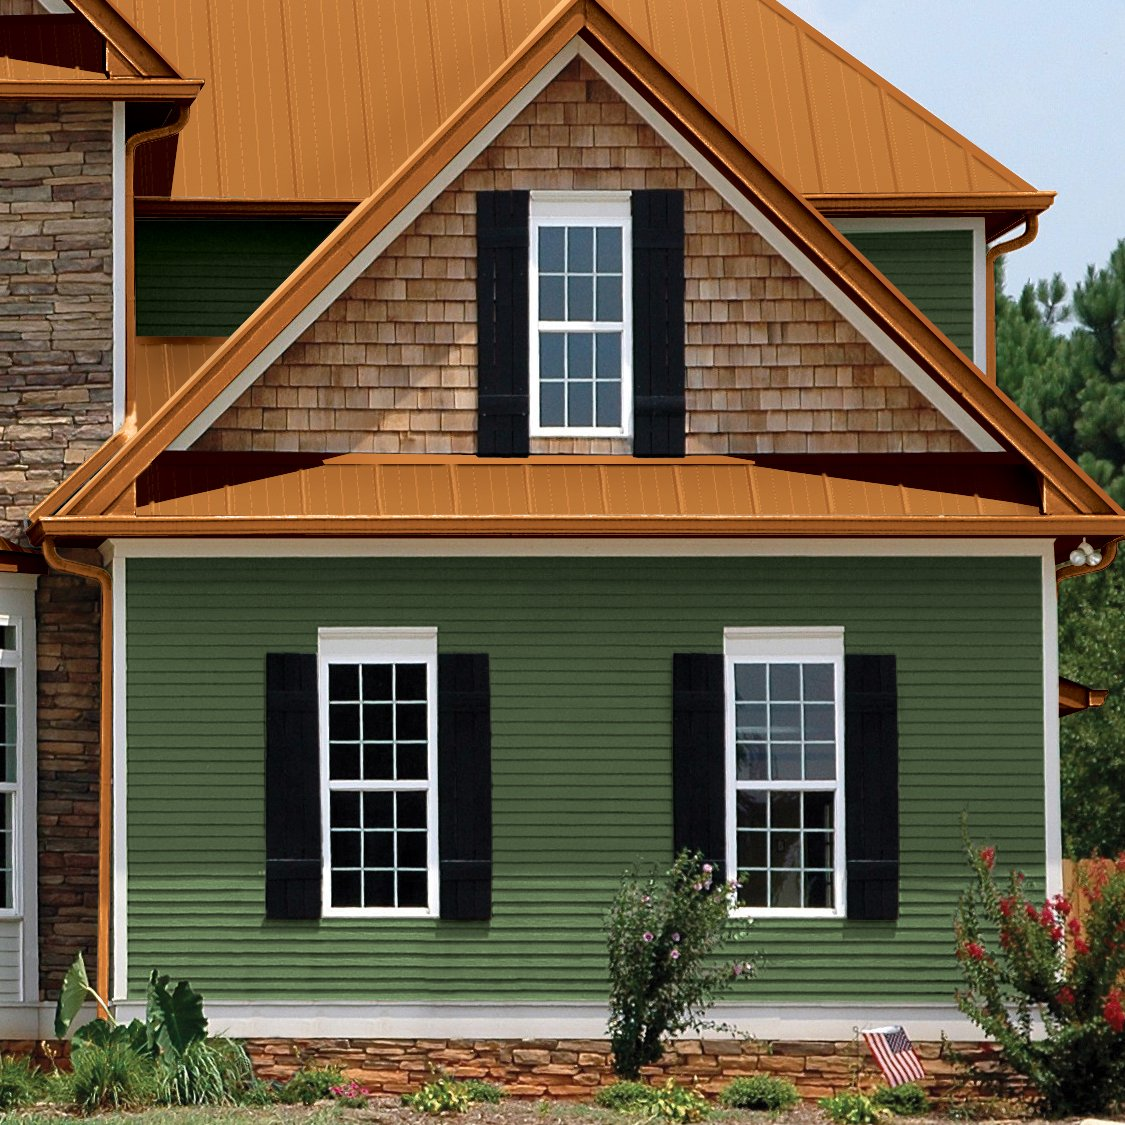 Virginia roofing siding company siding for Exterior siding design ideas